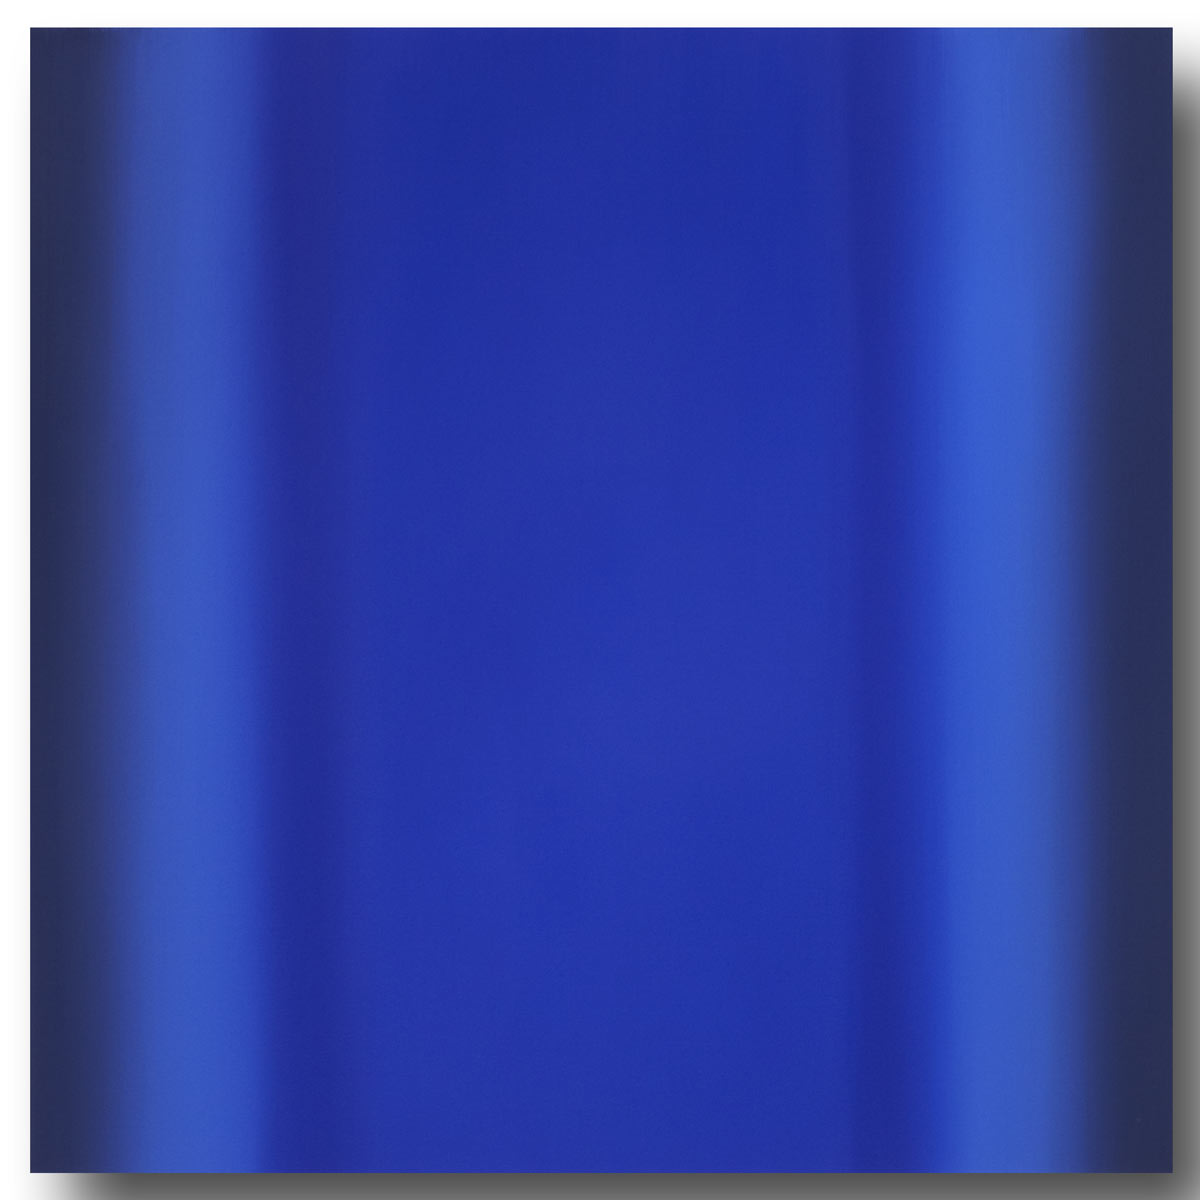 Mind's Eye Blue Orange 2-S4848 (Blue Deep), Sense Certainty Series, 2014, oil on canvas on custom beveled stretcher, 48 x 48 in. (122 x 122 cm.)